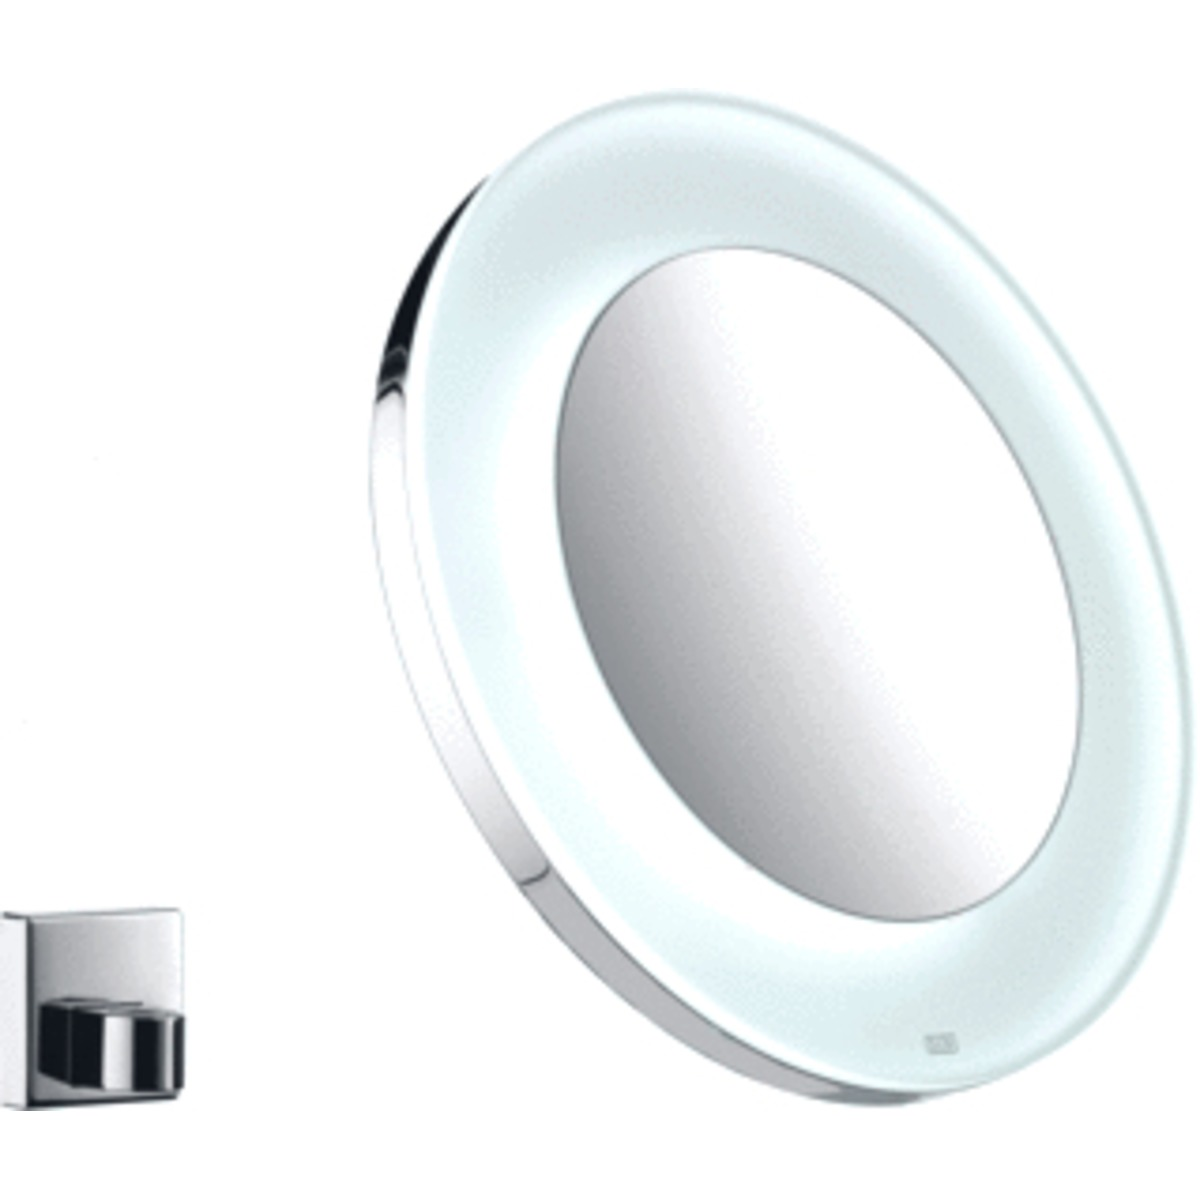 emco miroir grossissant avec clairage led avec. Black Bedroom Furniture Sets. Home Design Ideas